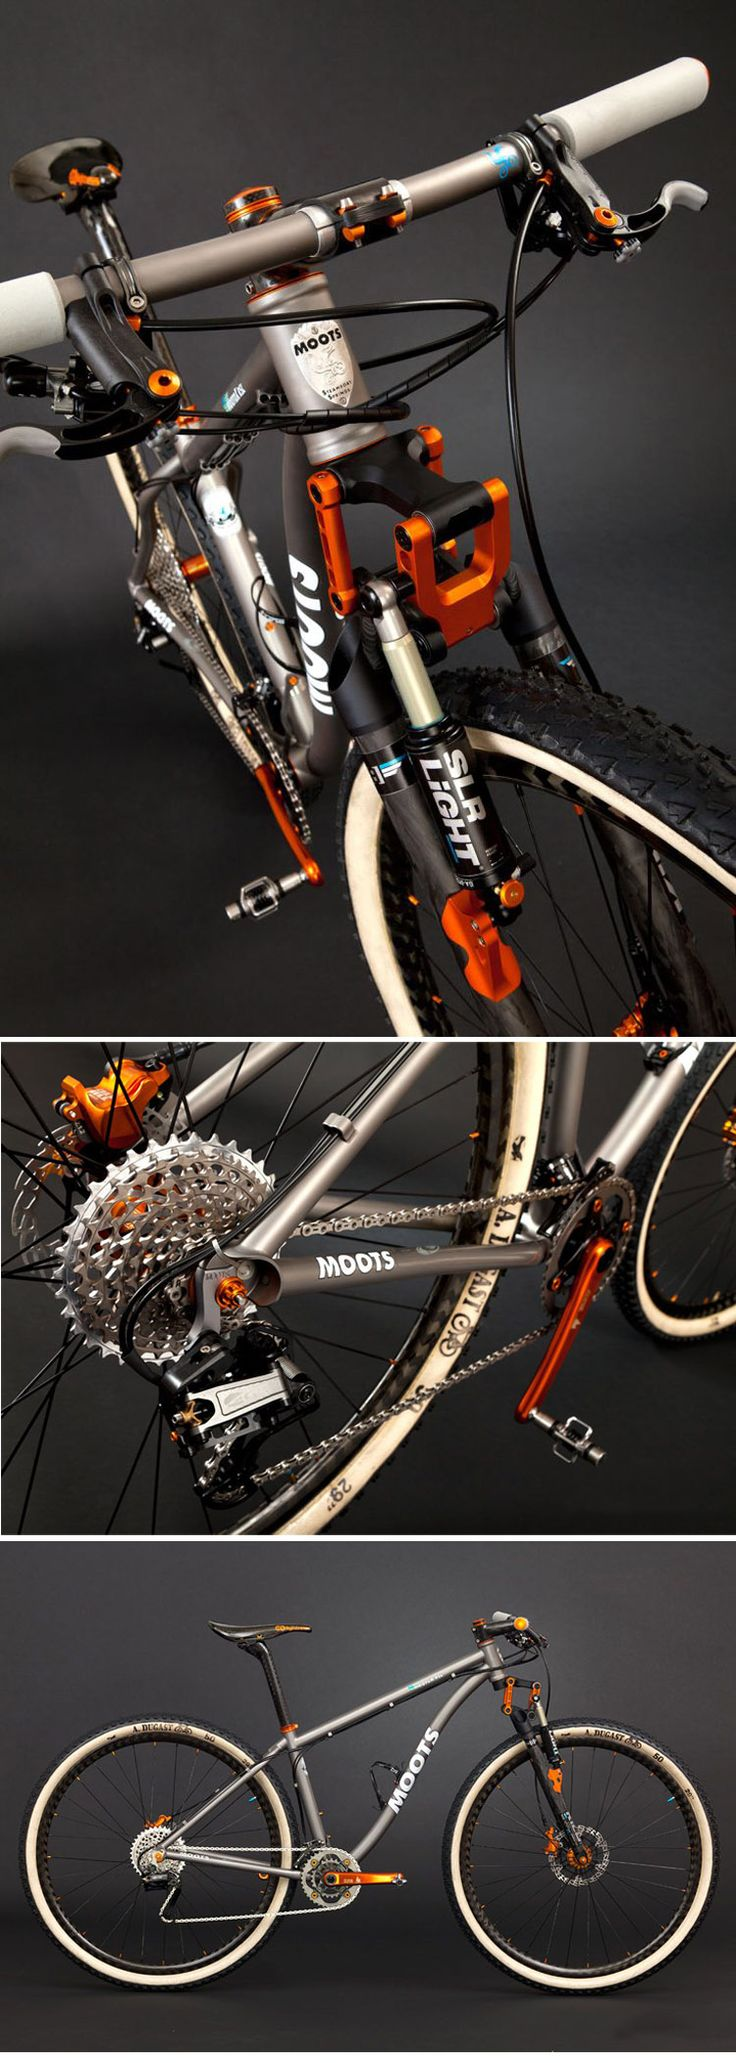 175 best bikes & style images on Pinterest | Bicycle design, Cycling ...